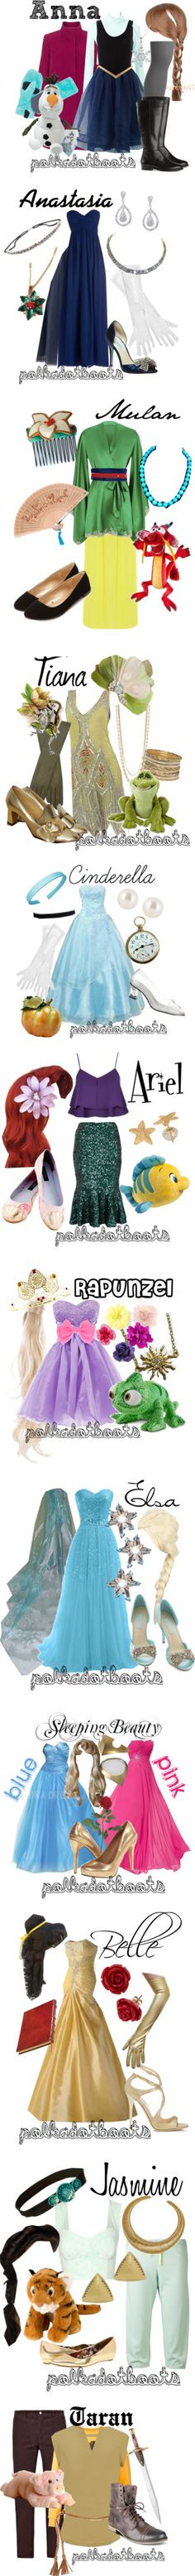 """Disney Halloween Costumes"" by polkadotboots ❤ liked on Polyvore"